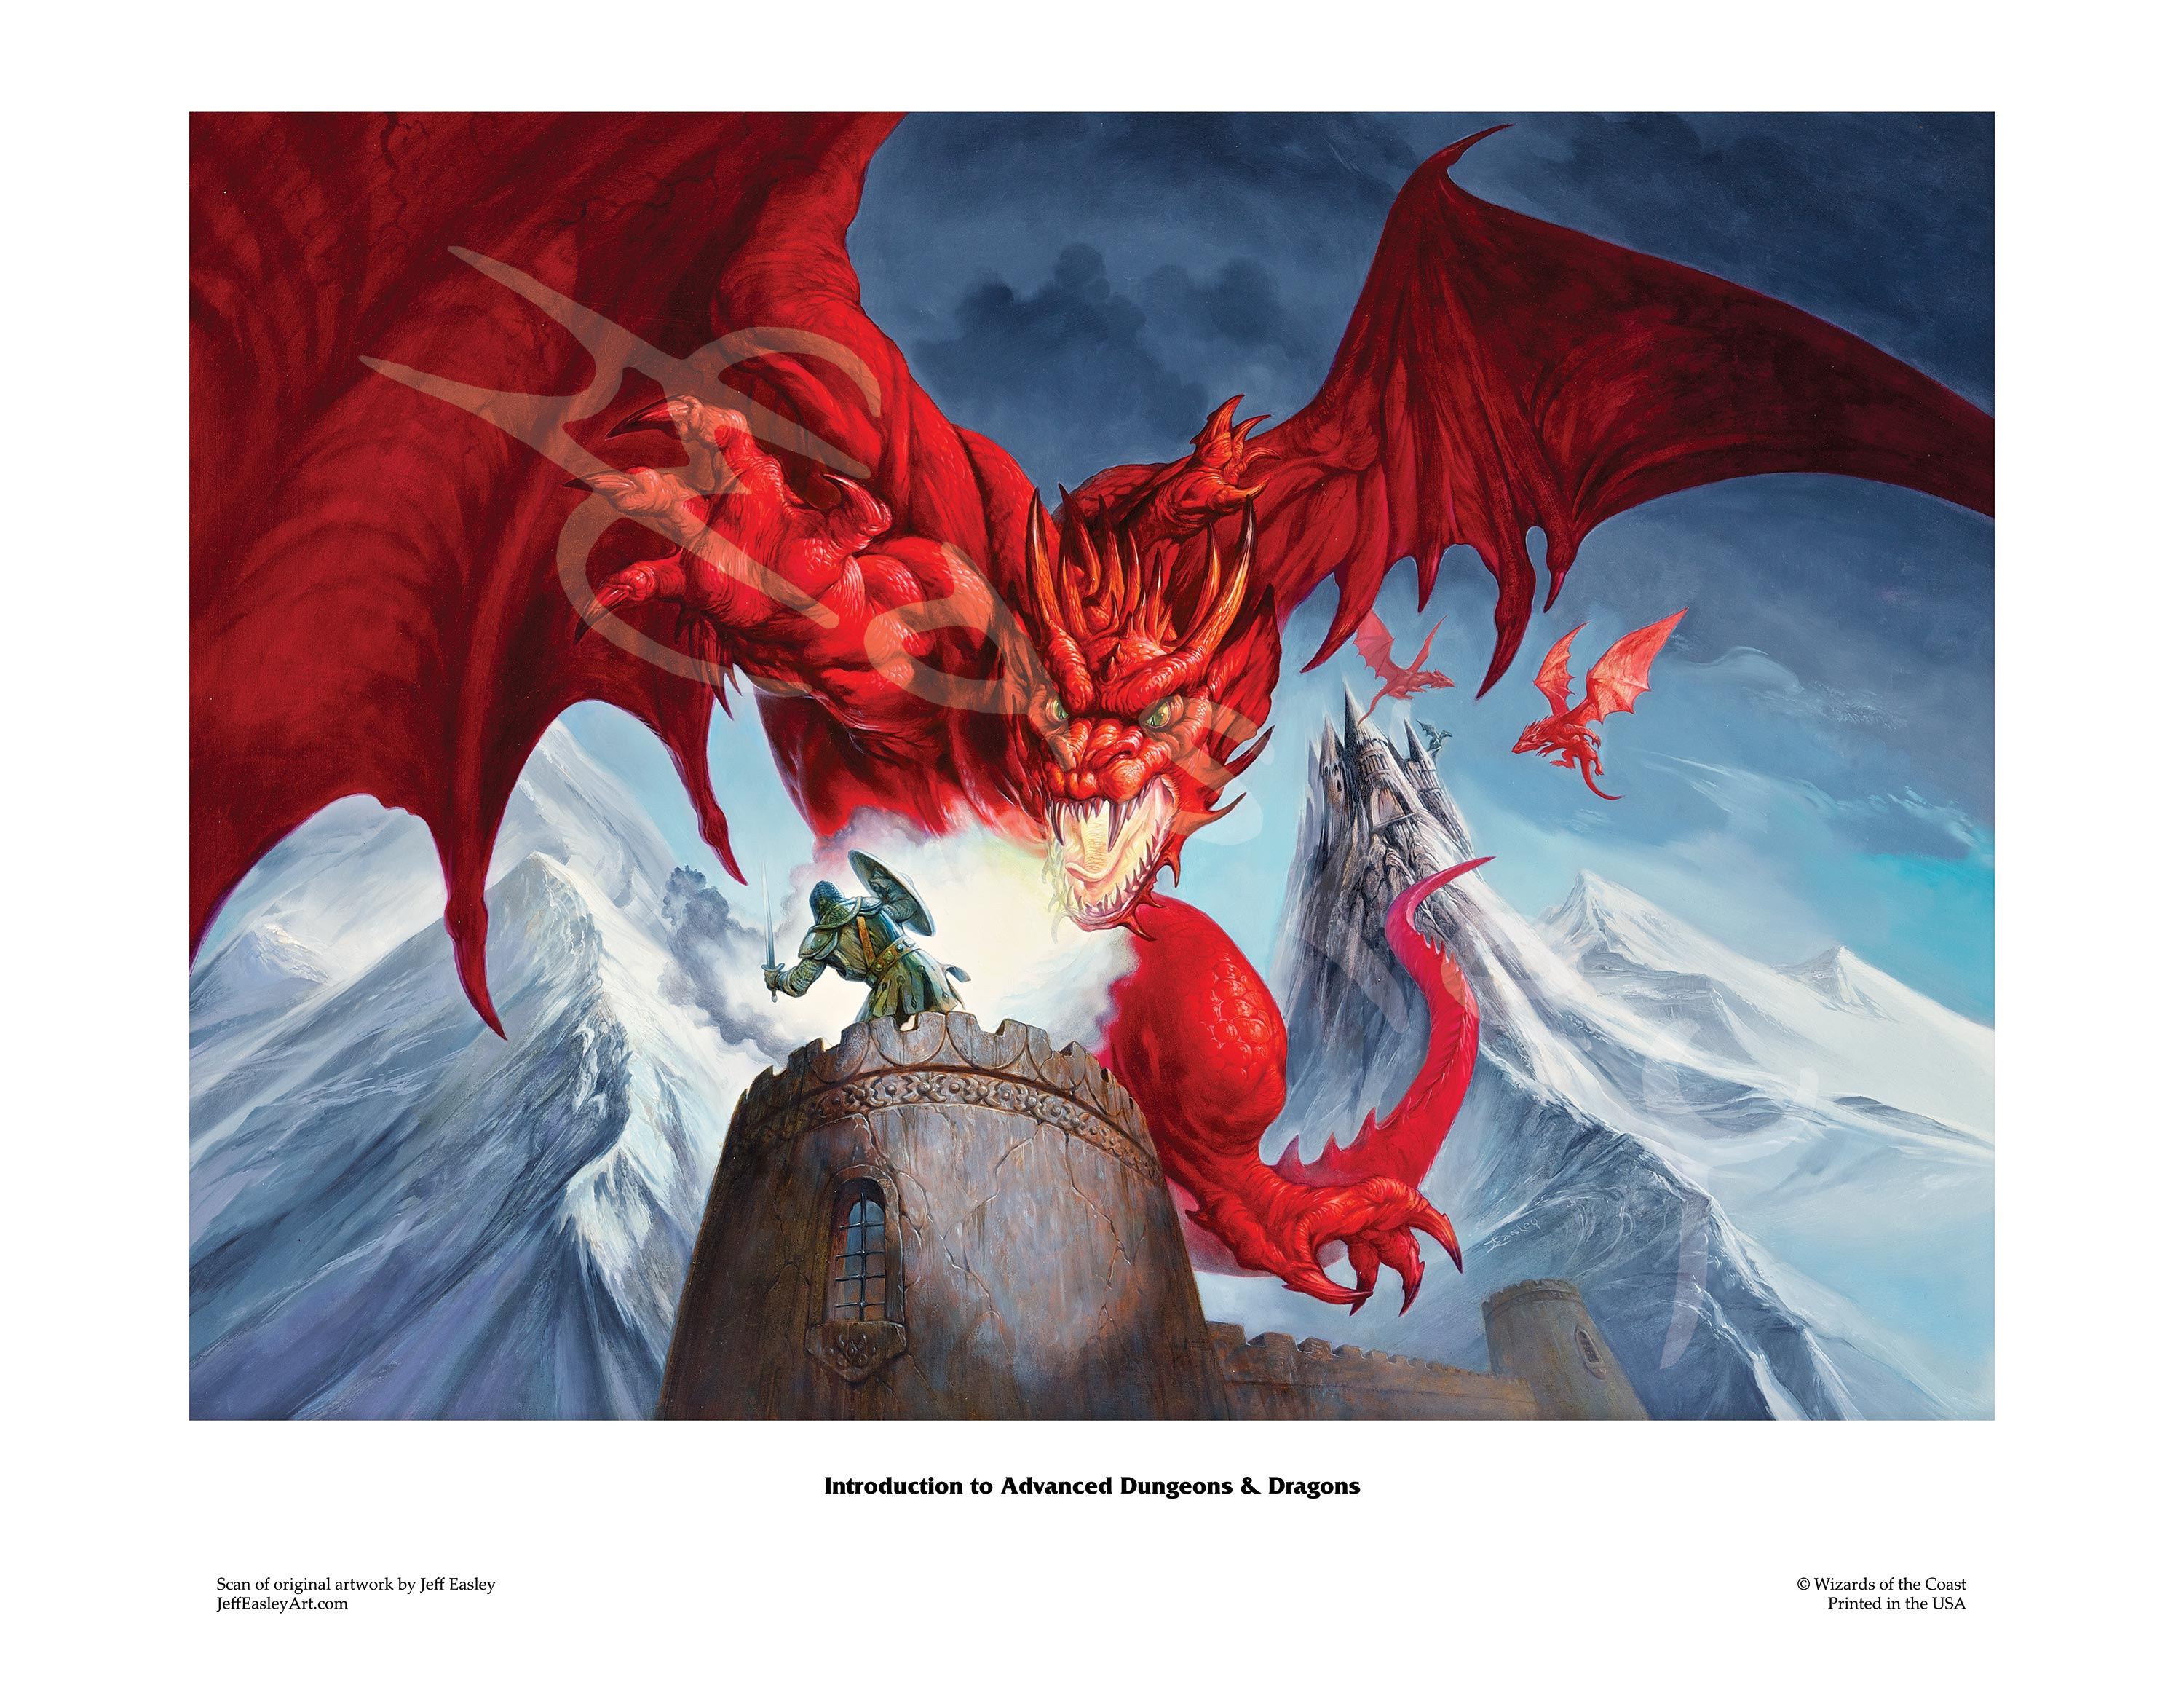 Introduction to AD&D